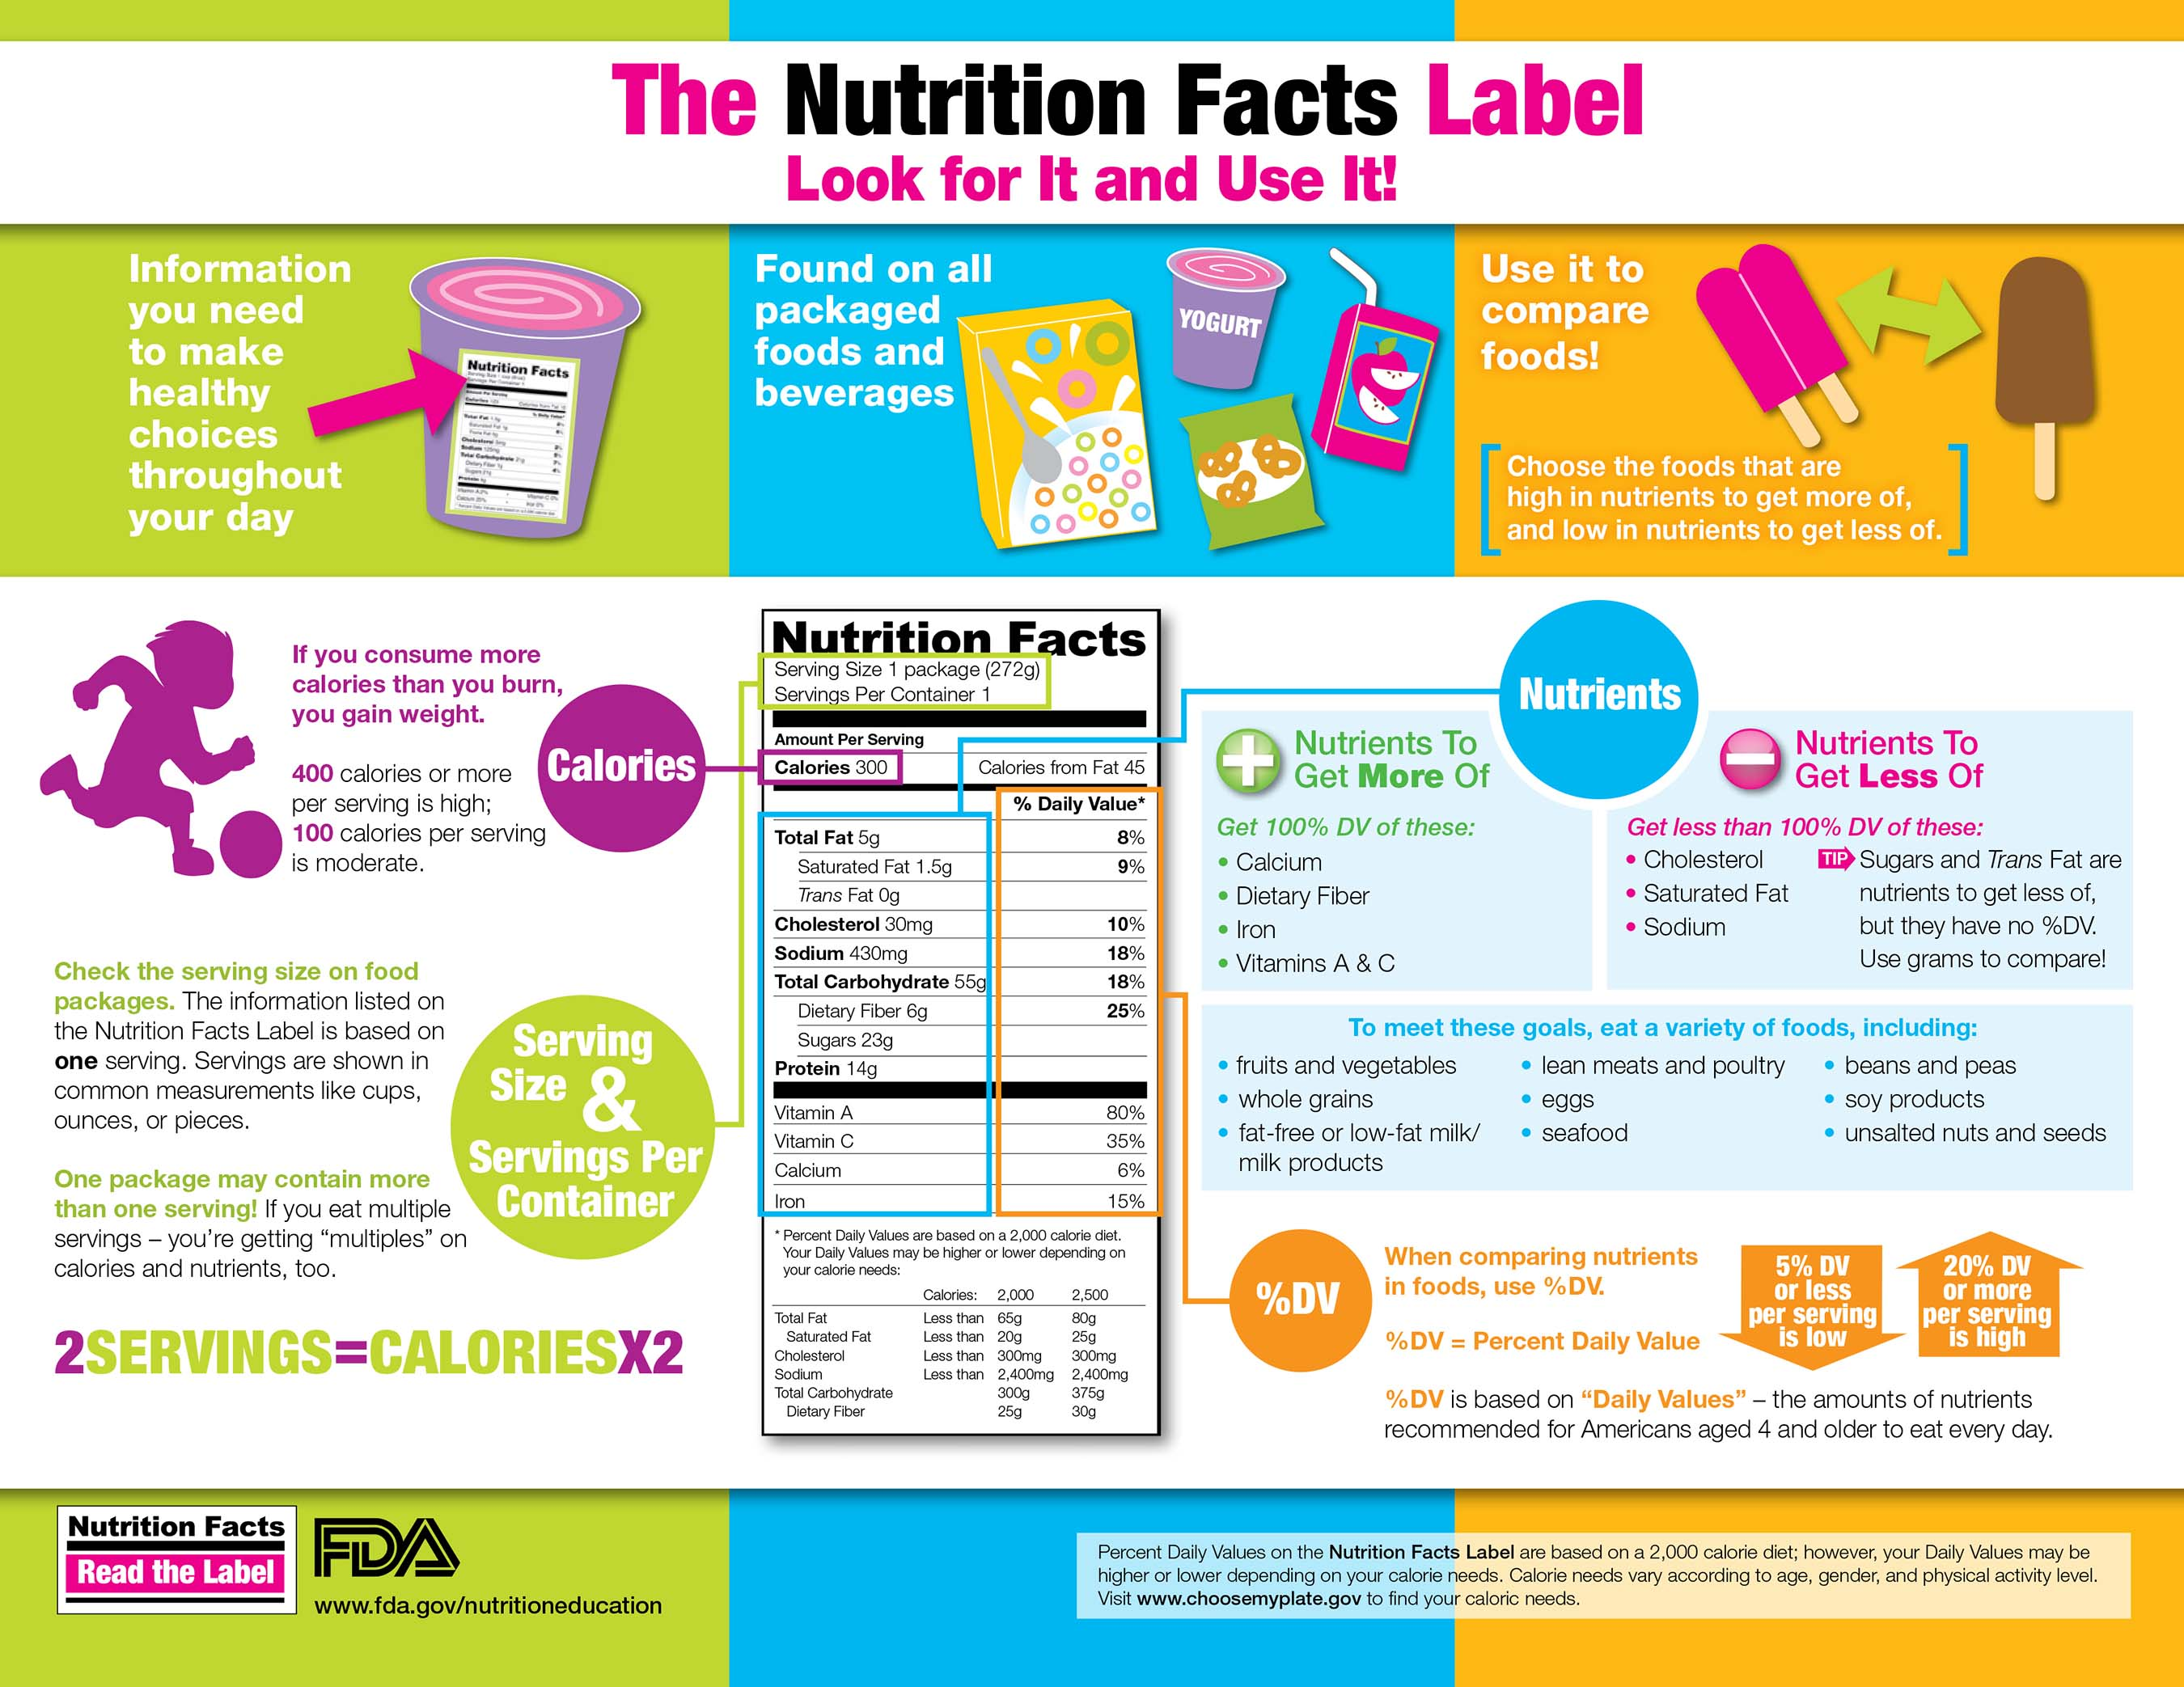 FDA Helps Kids Learn to Read the Label